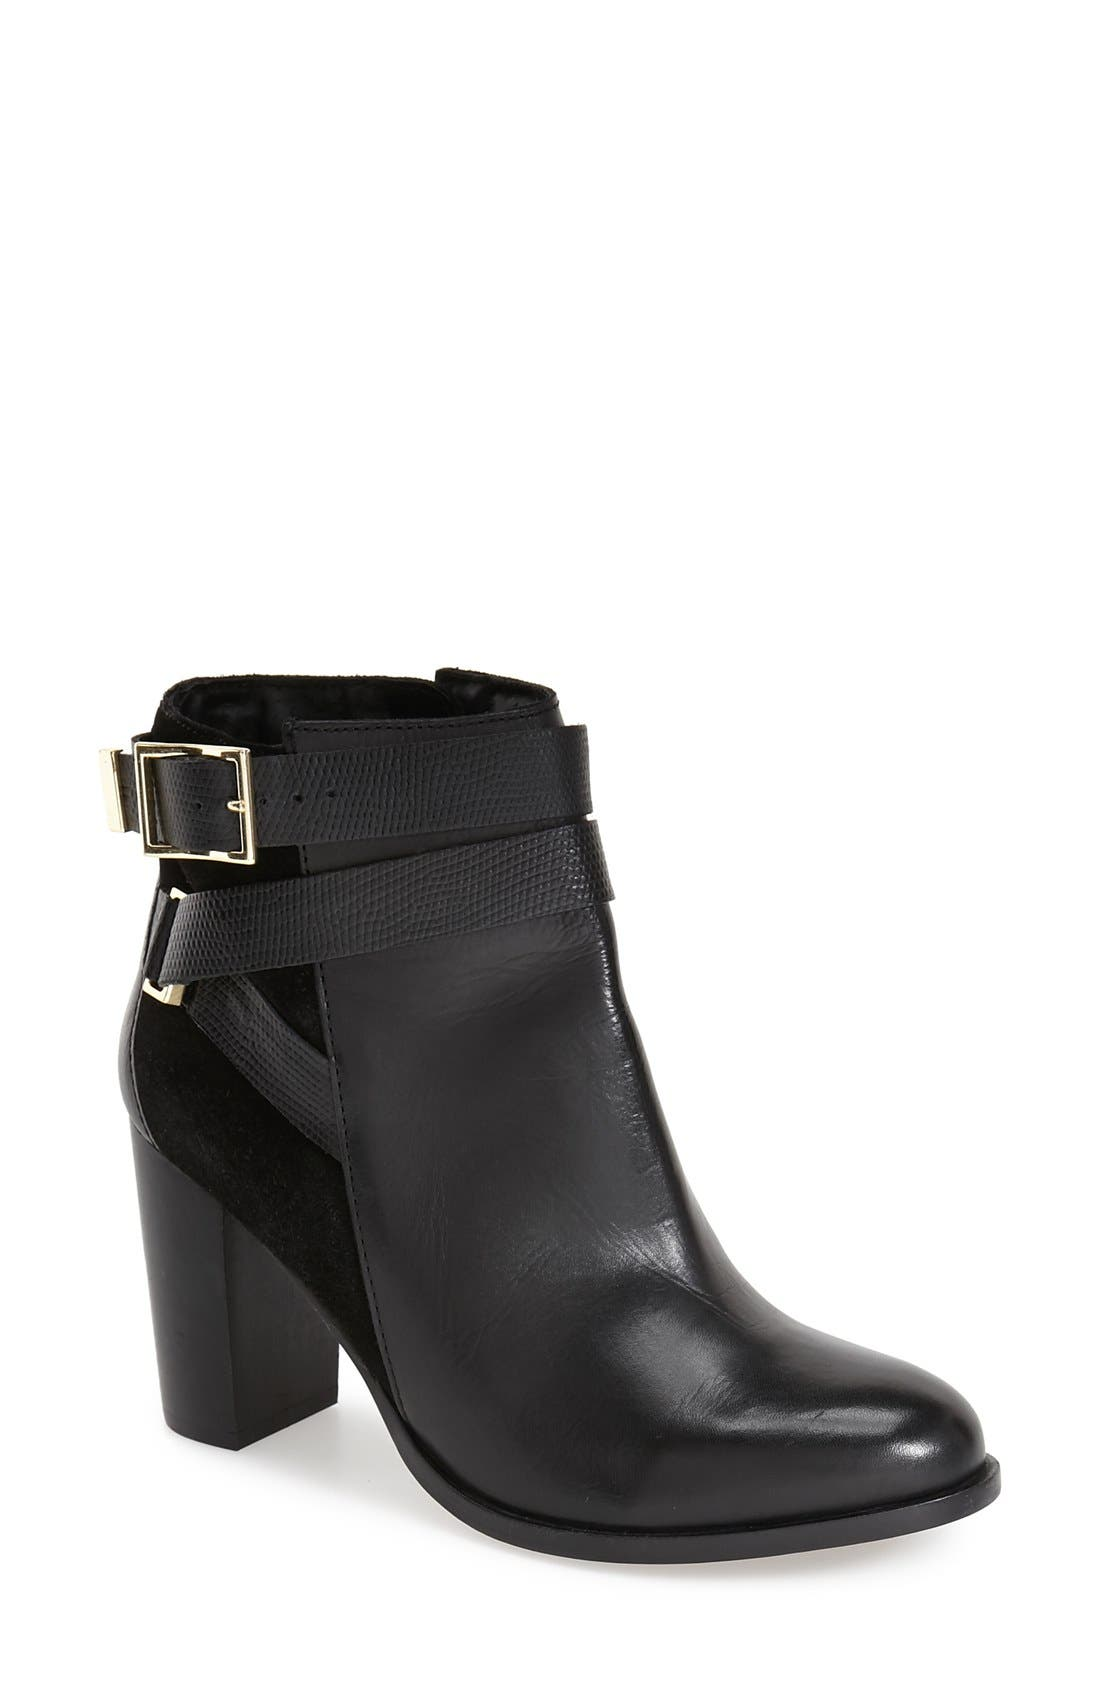 Main Image - Topshop 'Harper Buckle' Ankle Boot (Women)